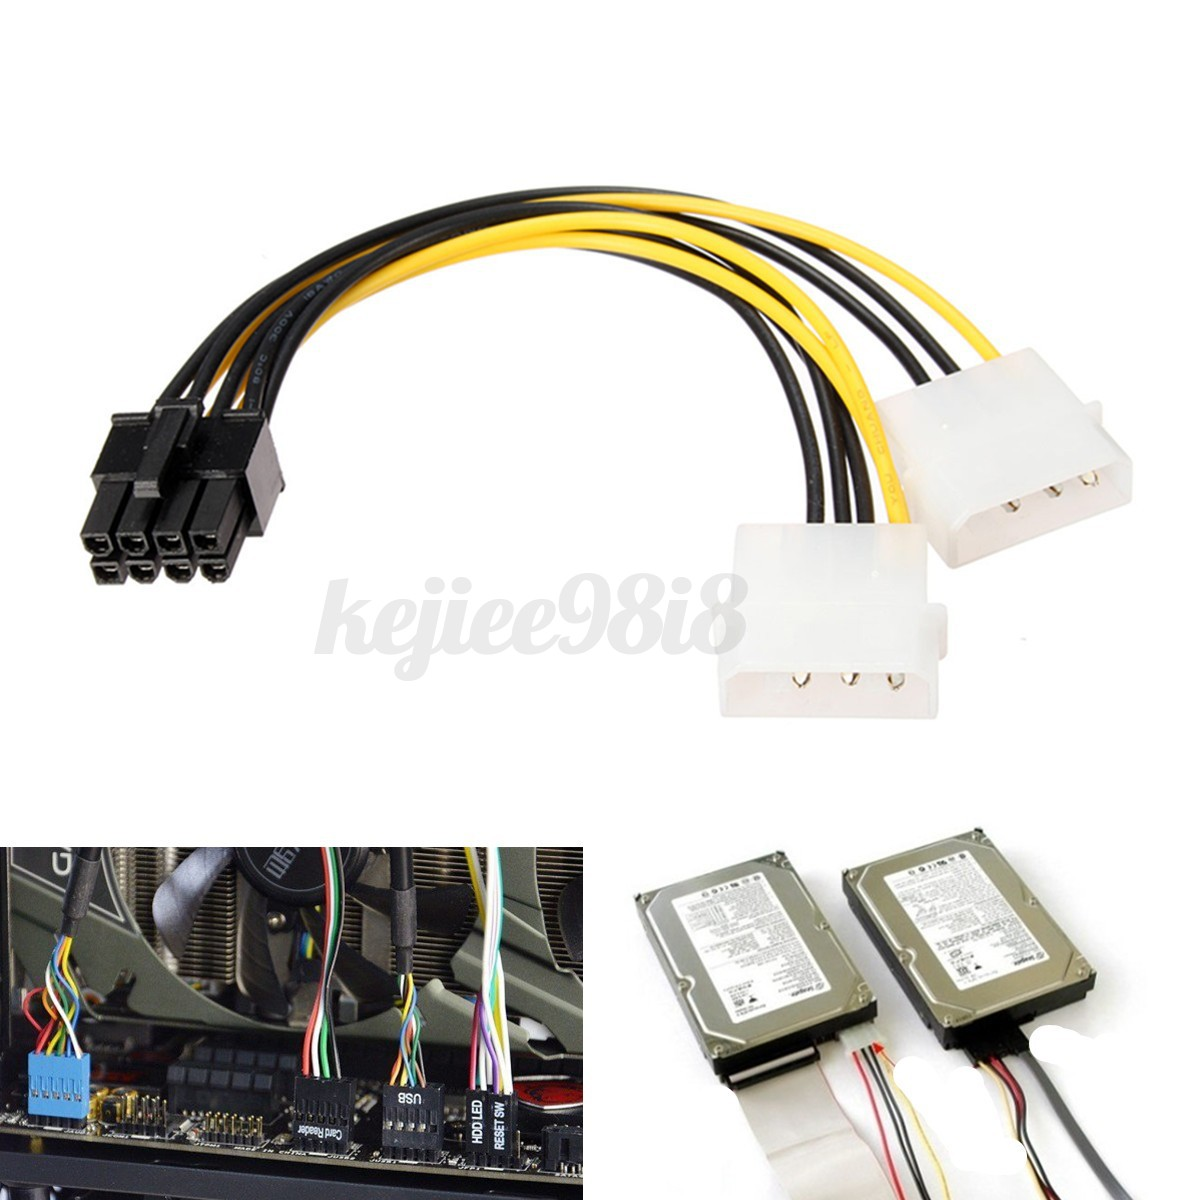 5 pin pci express adapter white rodgers thermostat wiring diagram 1f80 261 dual molex lp4 4 to 8 e converter